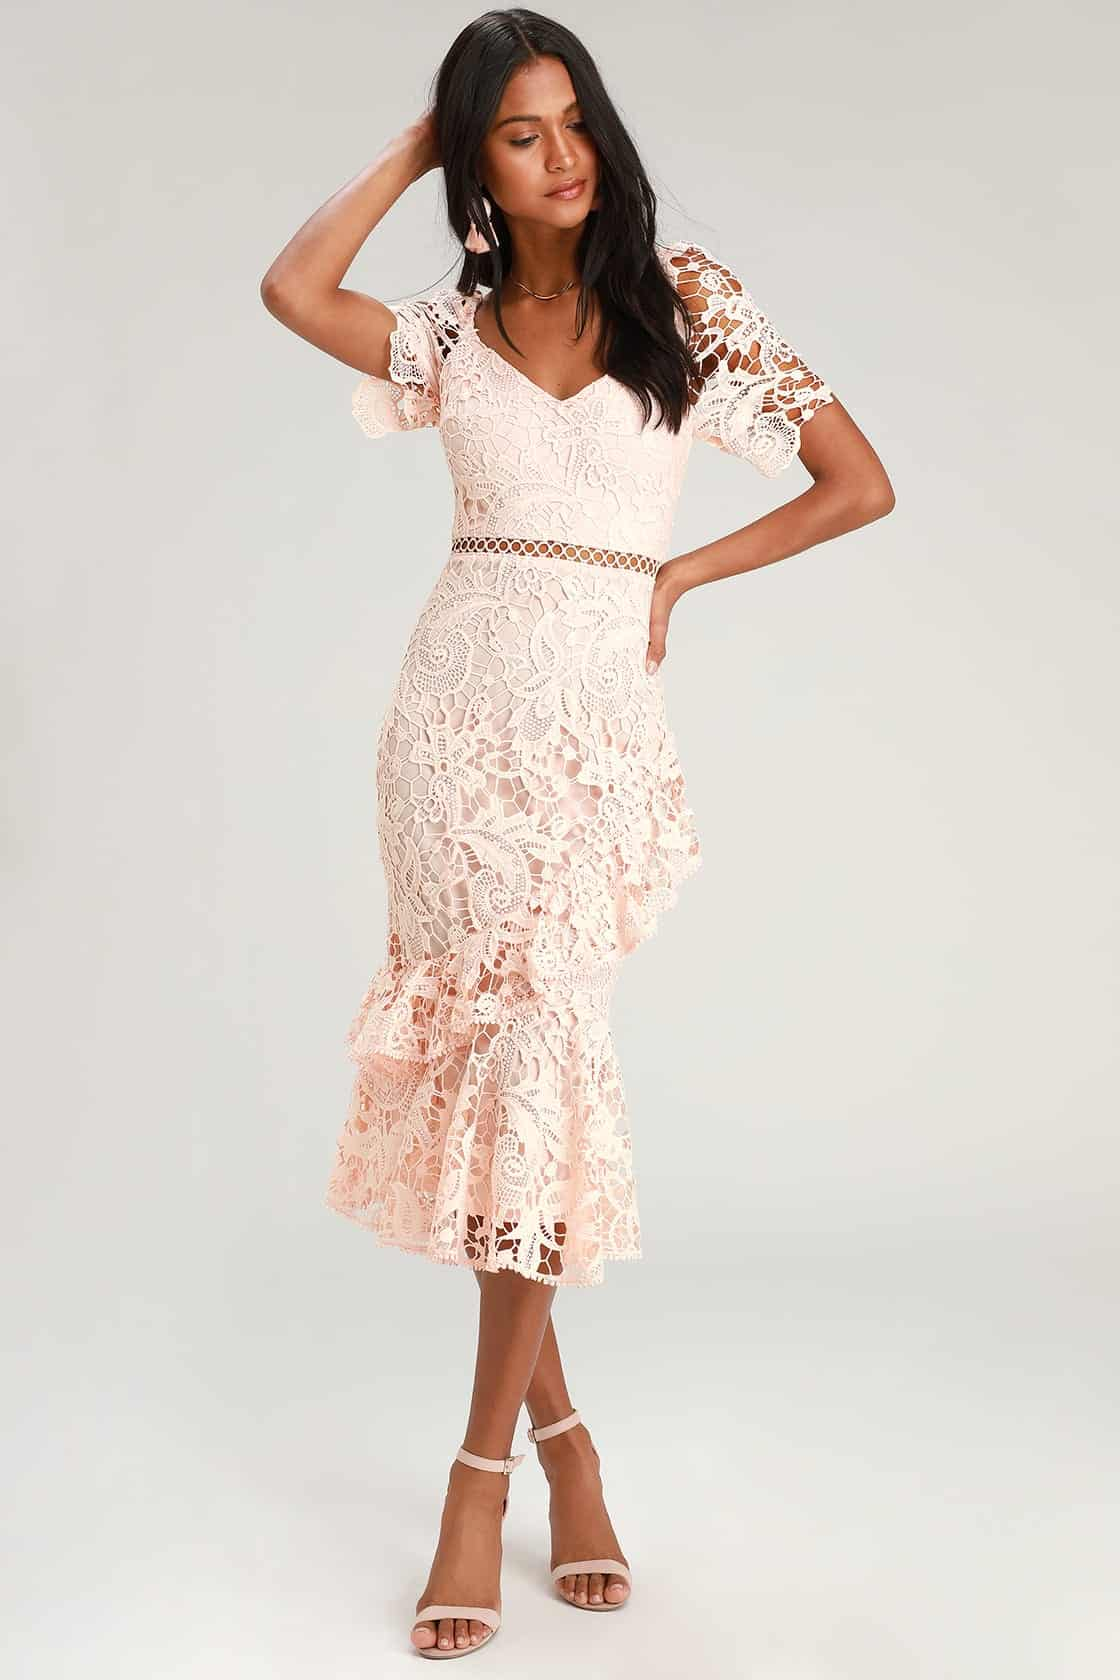 Bridal Shower Dresses For The Bride Blush Pink Lace Ruffled